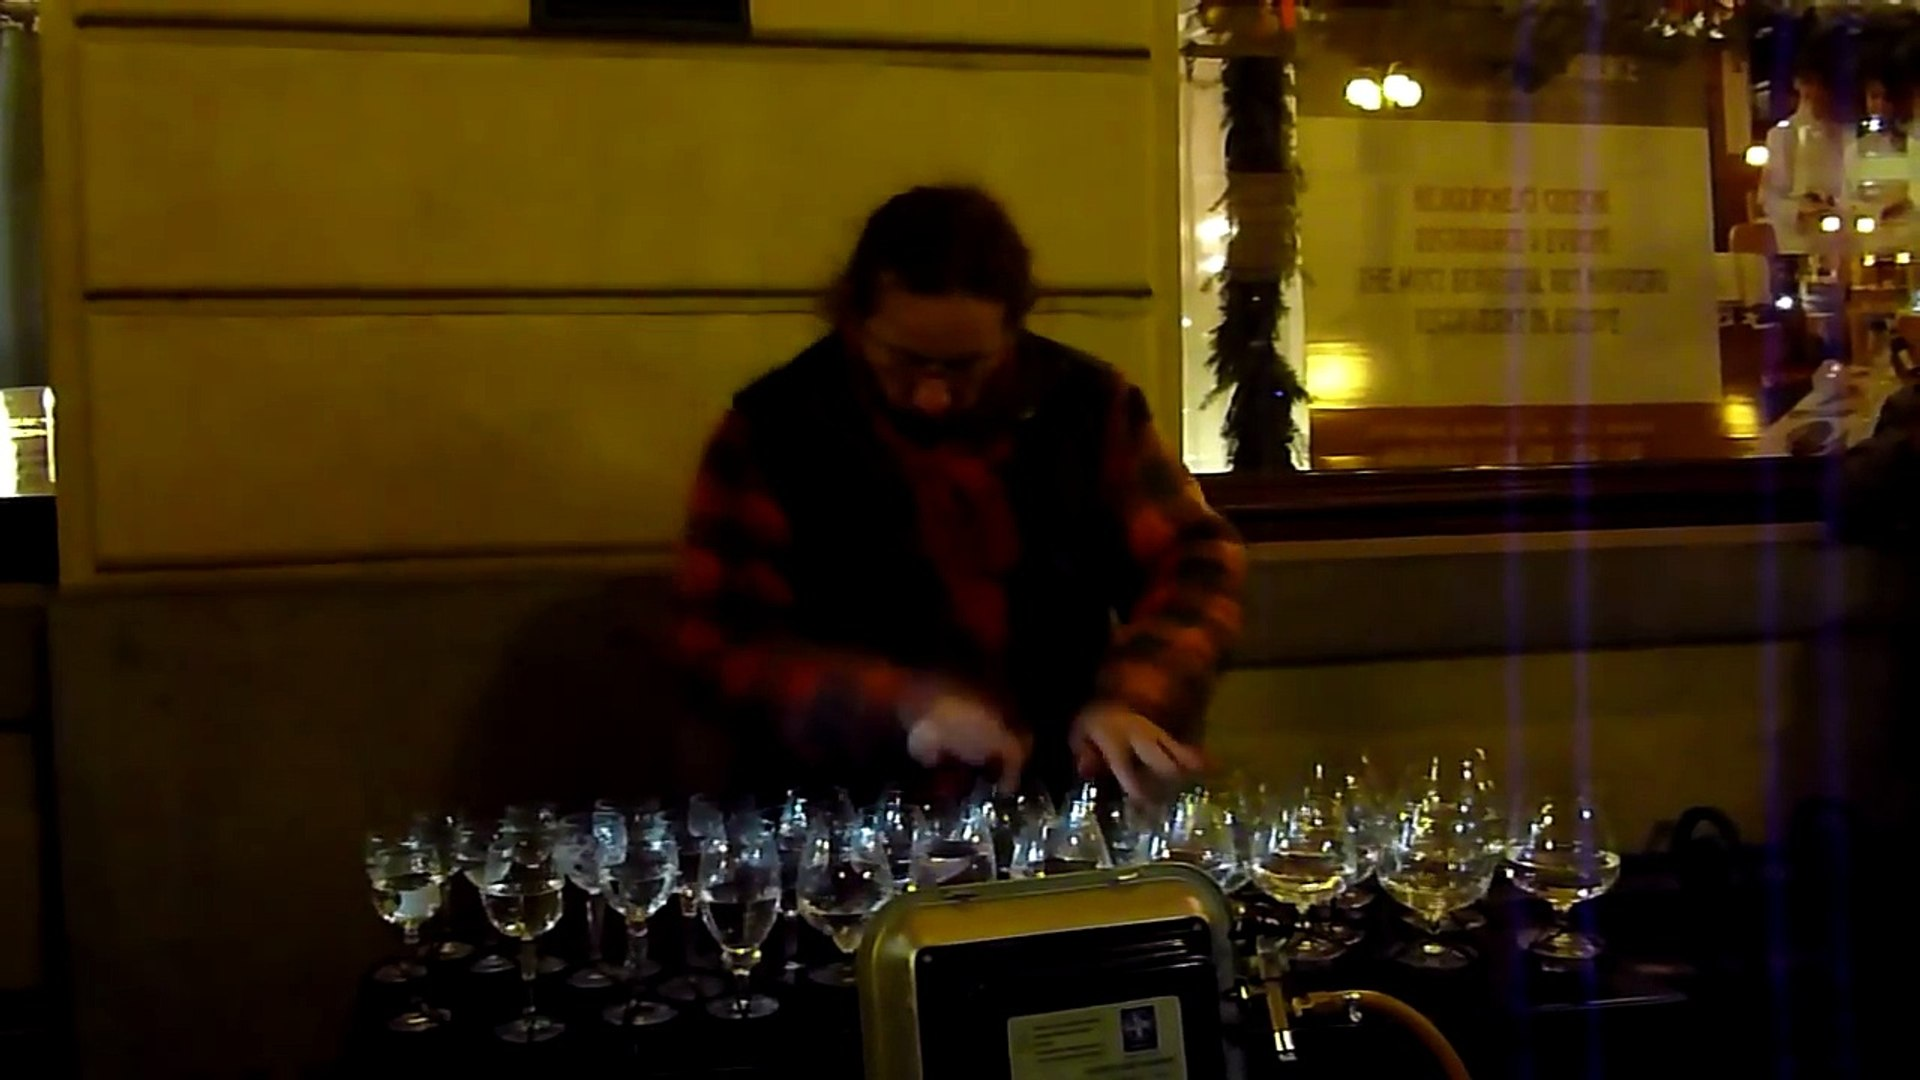 AMAZING Street Musician Playing Water Glasses! Music Video HD